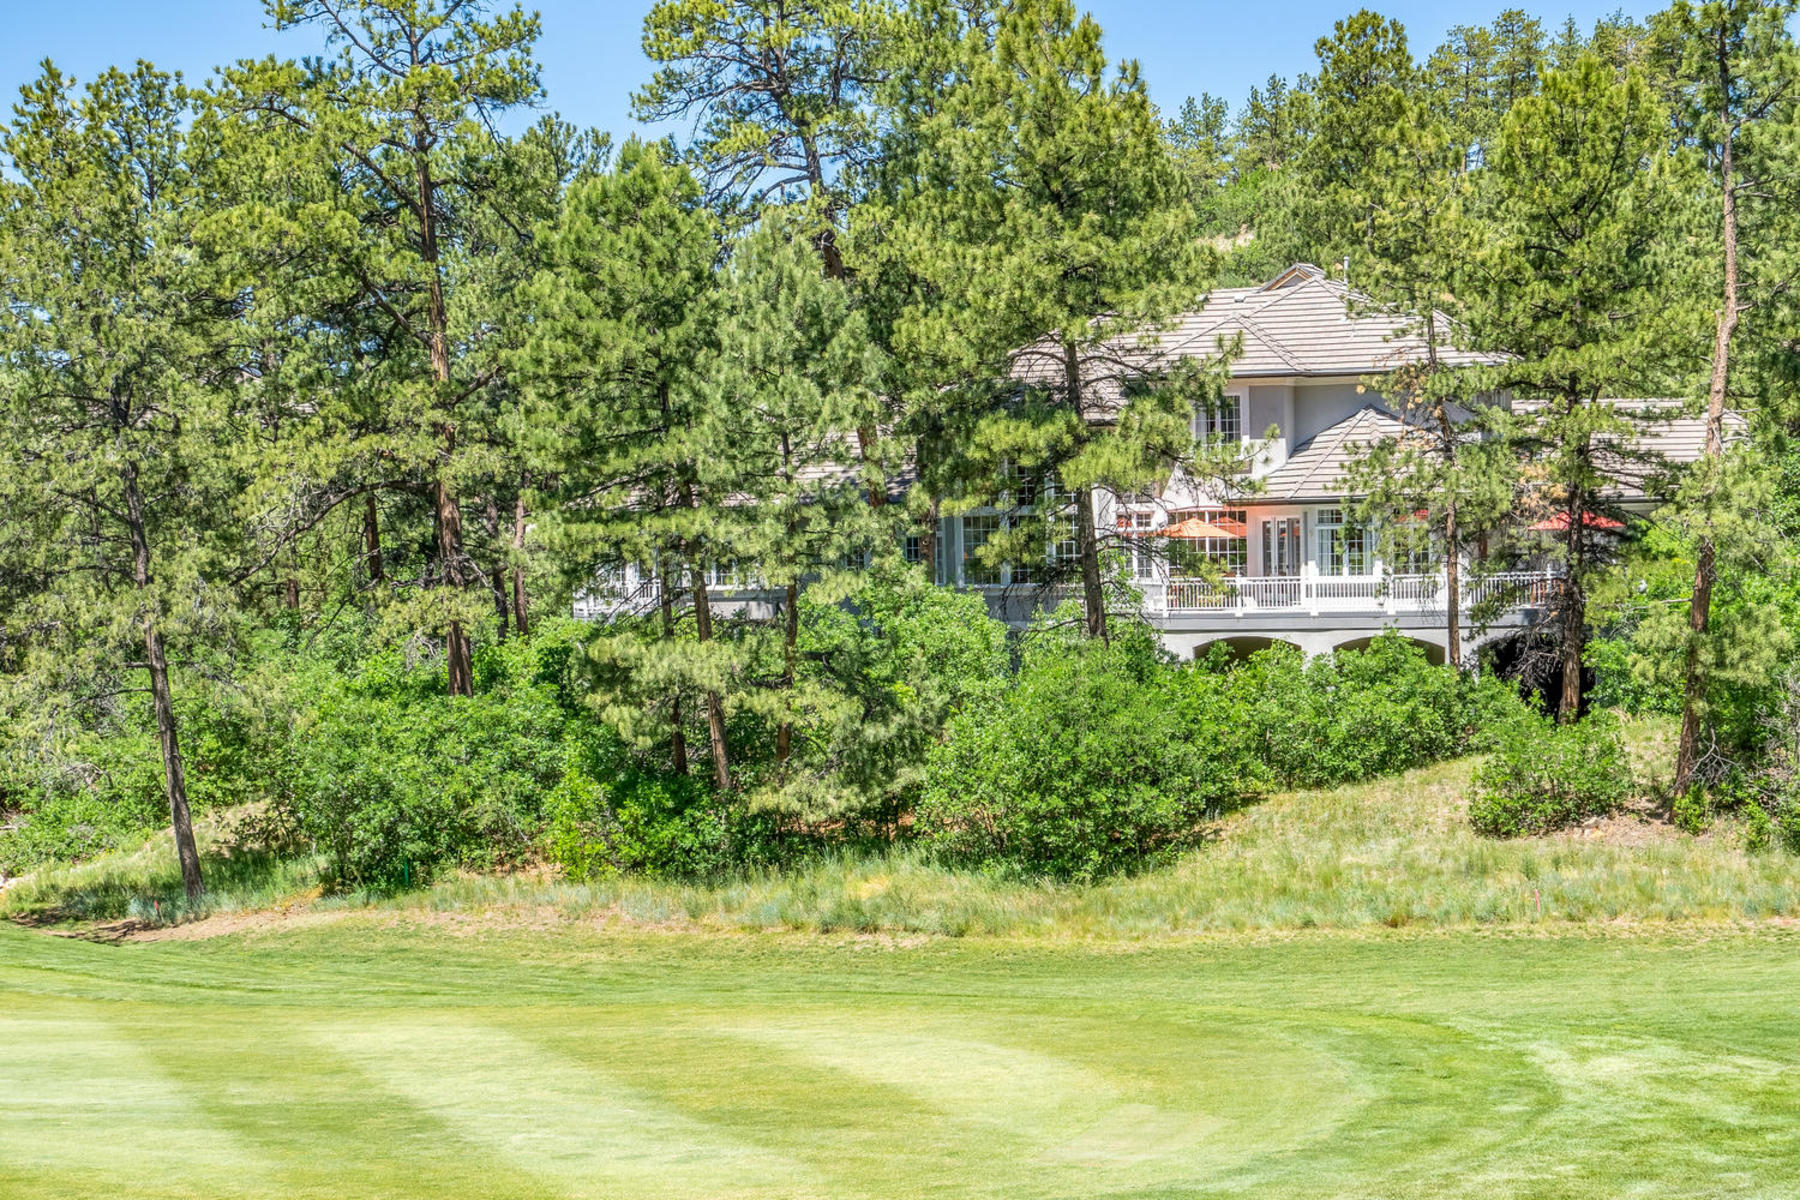 Single Family Home for Active at Private and secluded on a long driveway thru the pine trees to circular driveway 227 Hidden Valley Ln Castle Rock, Colorado 80108 United States